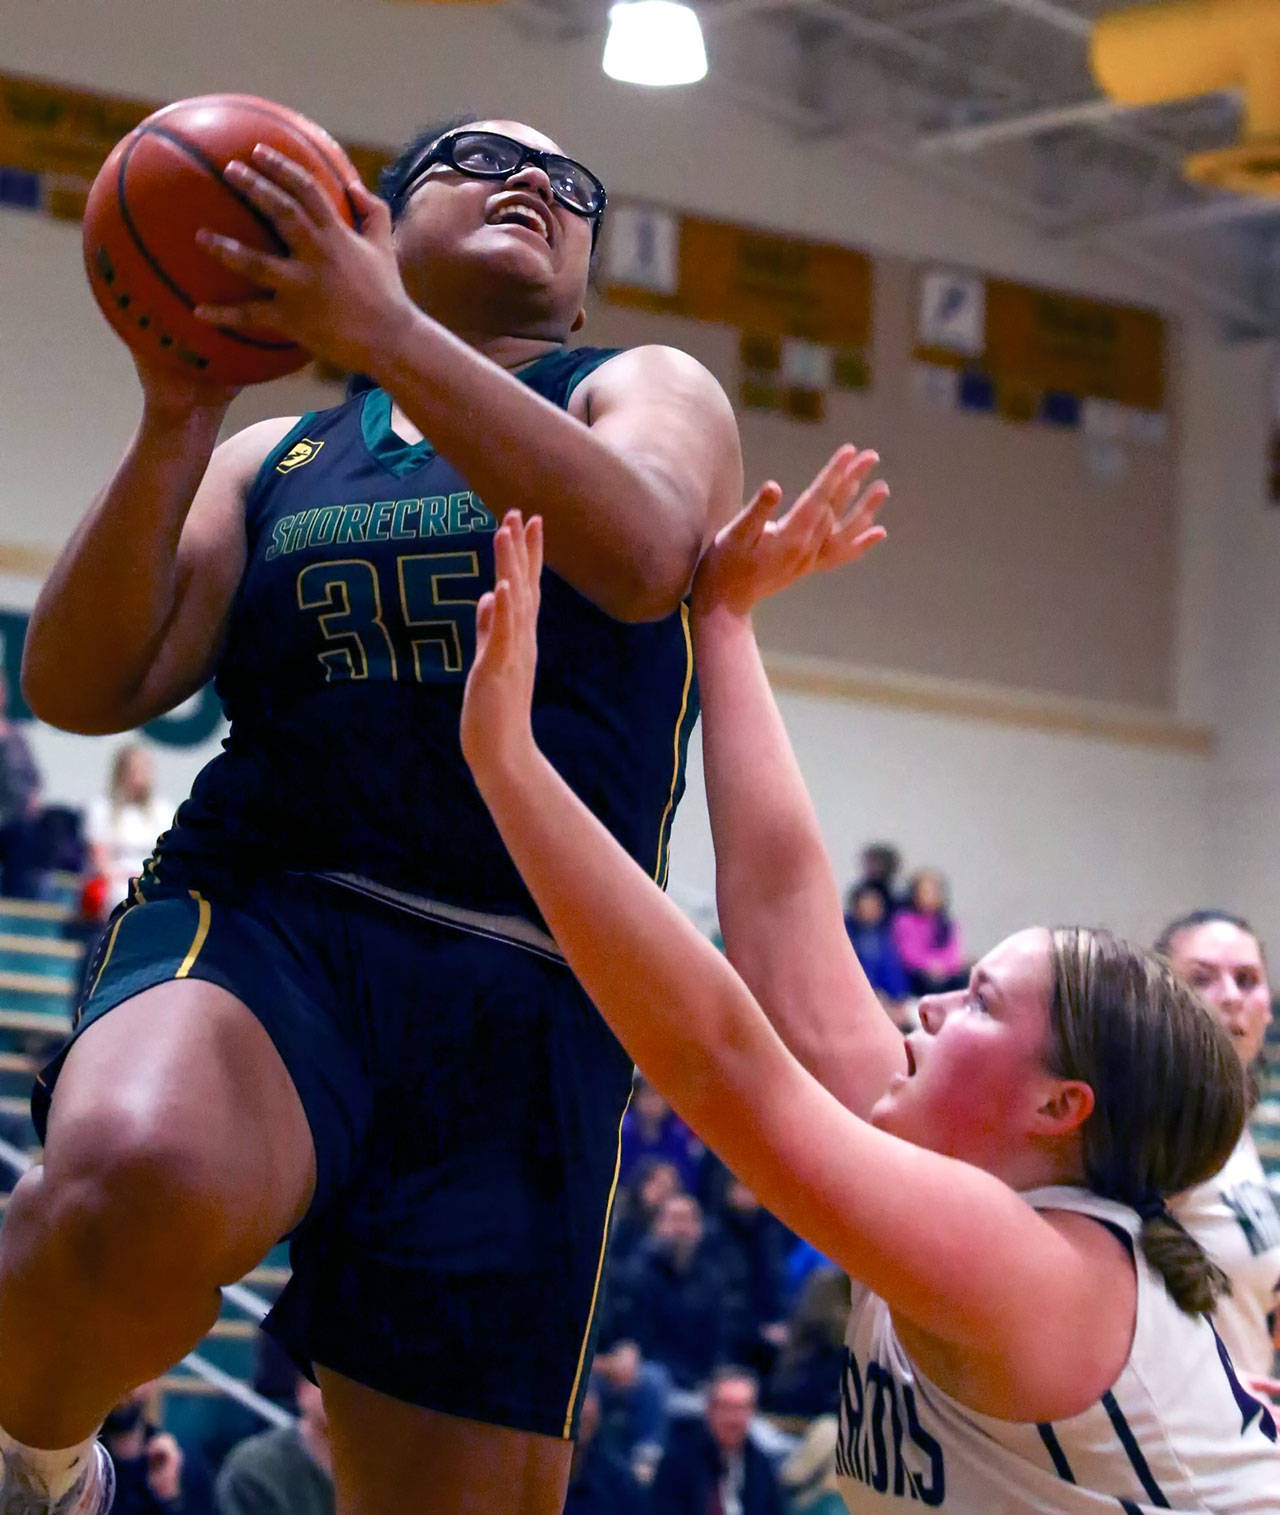 Shorecrest center Kiana Lino attempts a shot over Edmonds-Woodway's Halle Waram during the Scots' 59-52 overtime win Tuesday night. Lino hit a key 3-pointer in overtime and finished with 15 points and 15 rebounds. (Kevin Clark / The Herald)